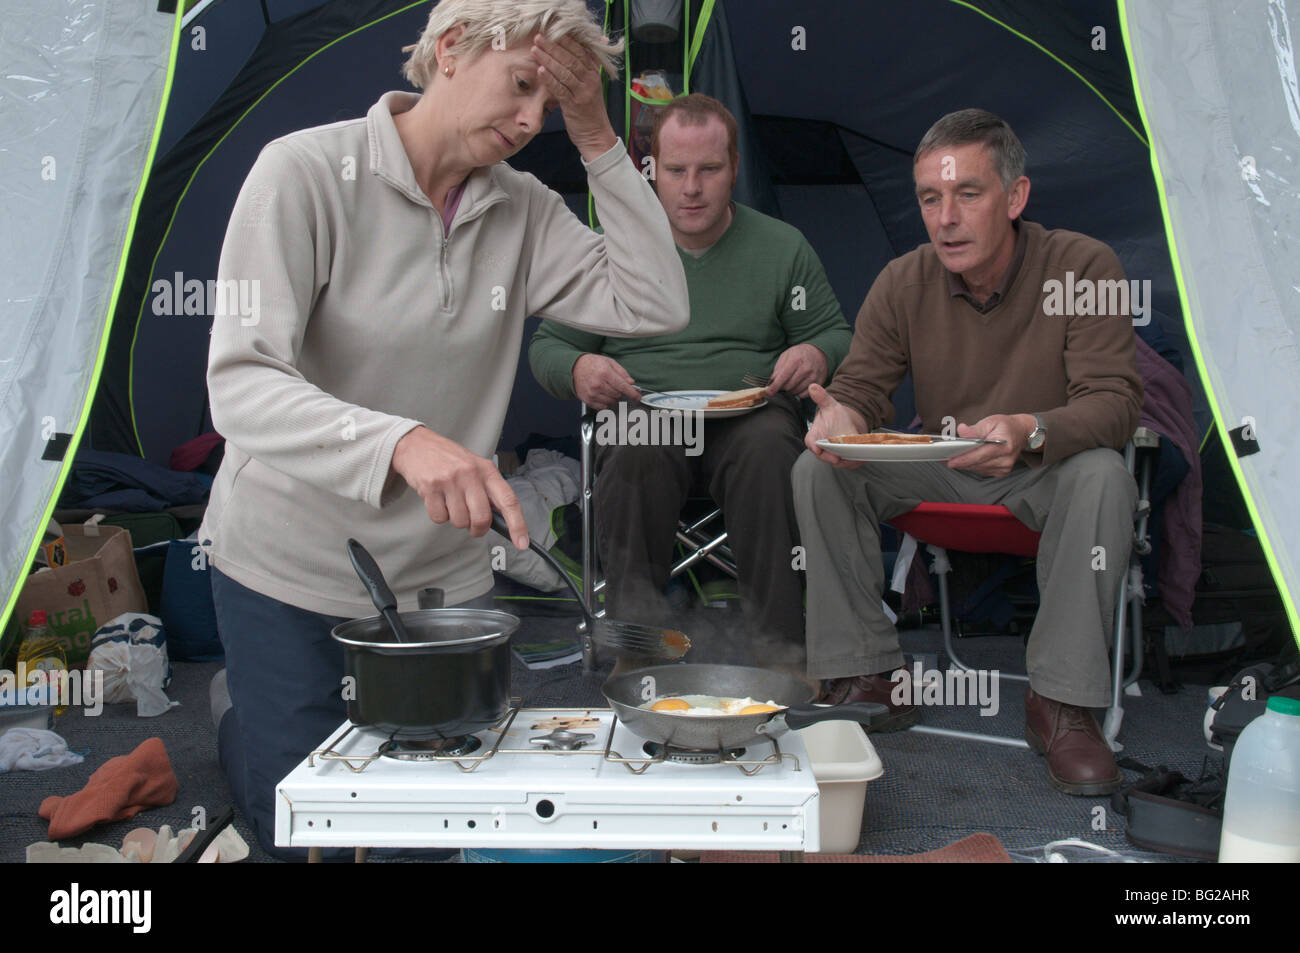 woman in tent cooking for two men as they just watch, Lazy men. - Stock Image